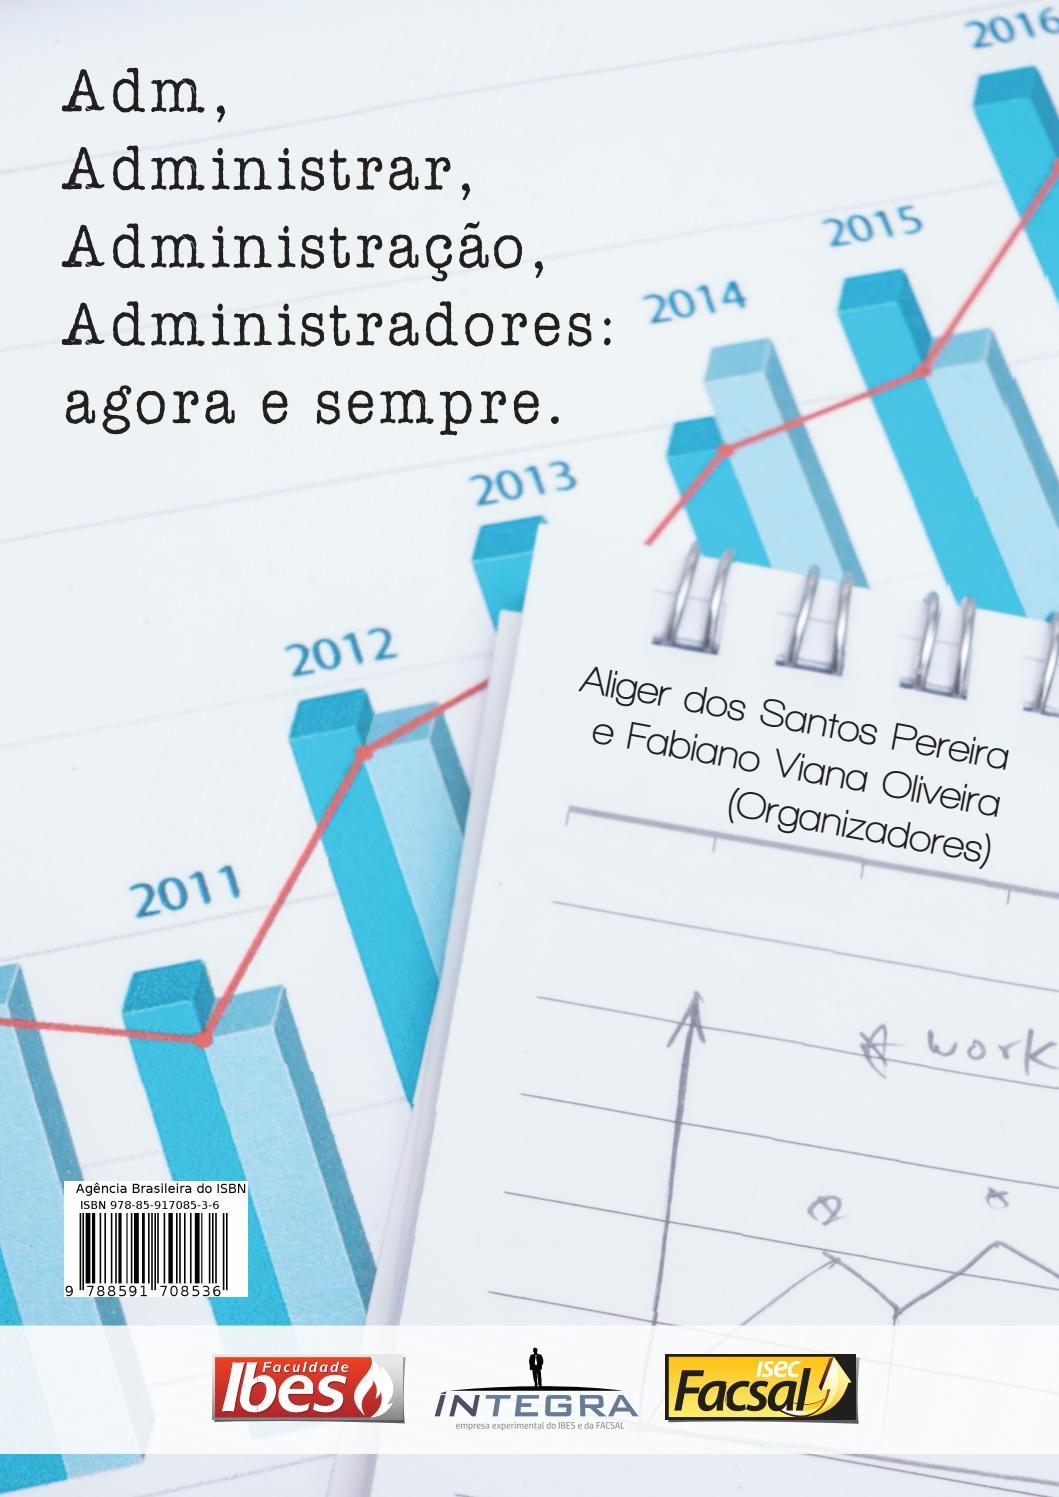 Administrao agora e sempre by ibes voceadm issuu fandeluxe Choice Image